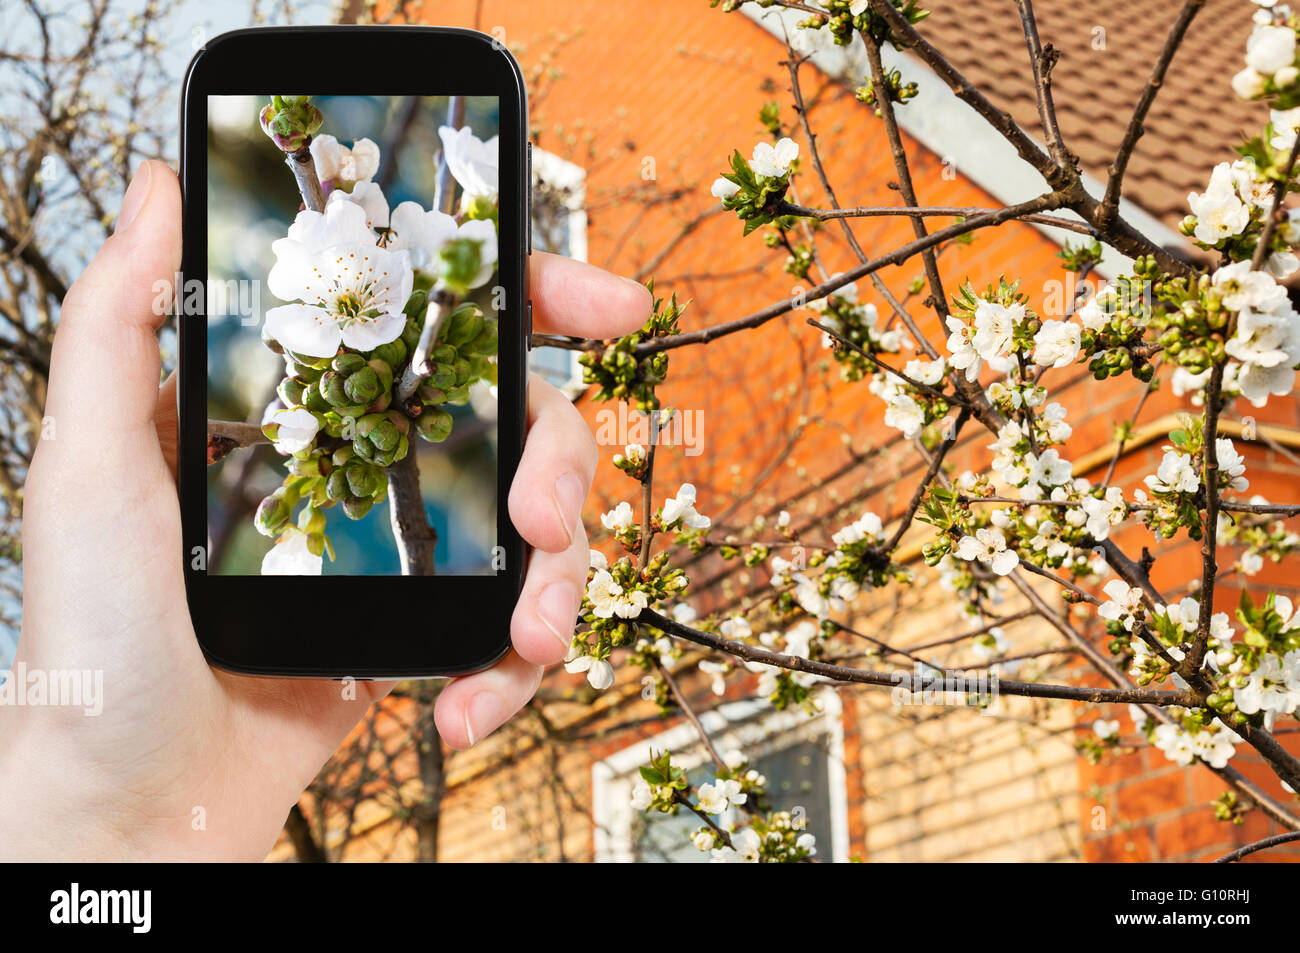 gardening concept - farmer photographs white blossoms of black ... on